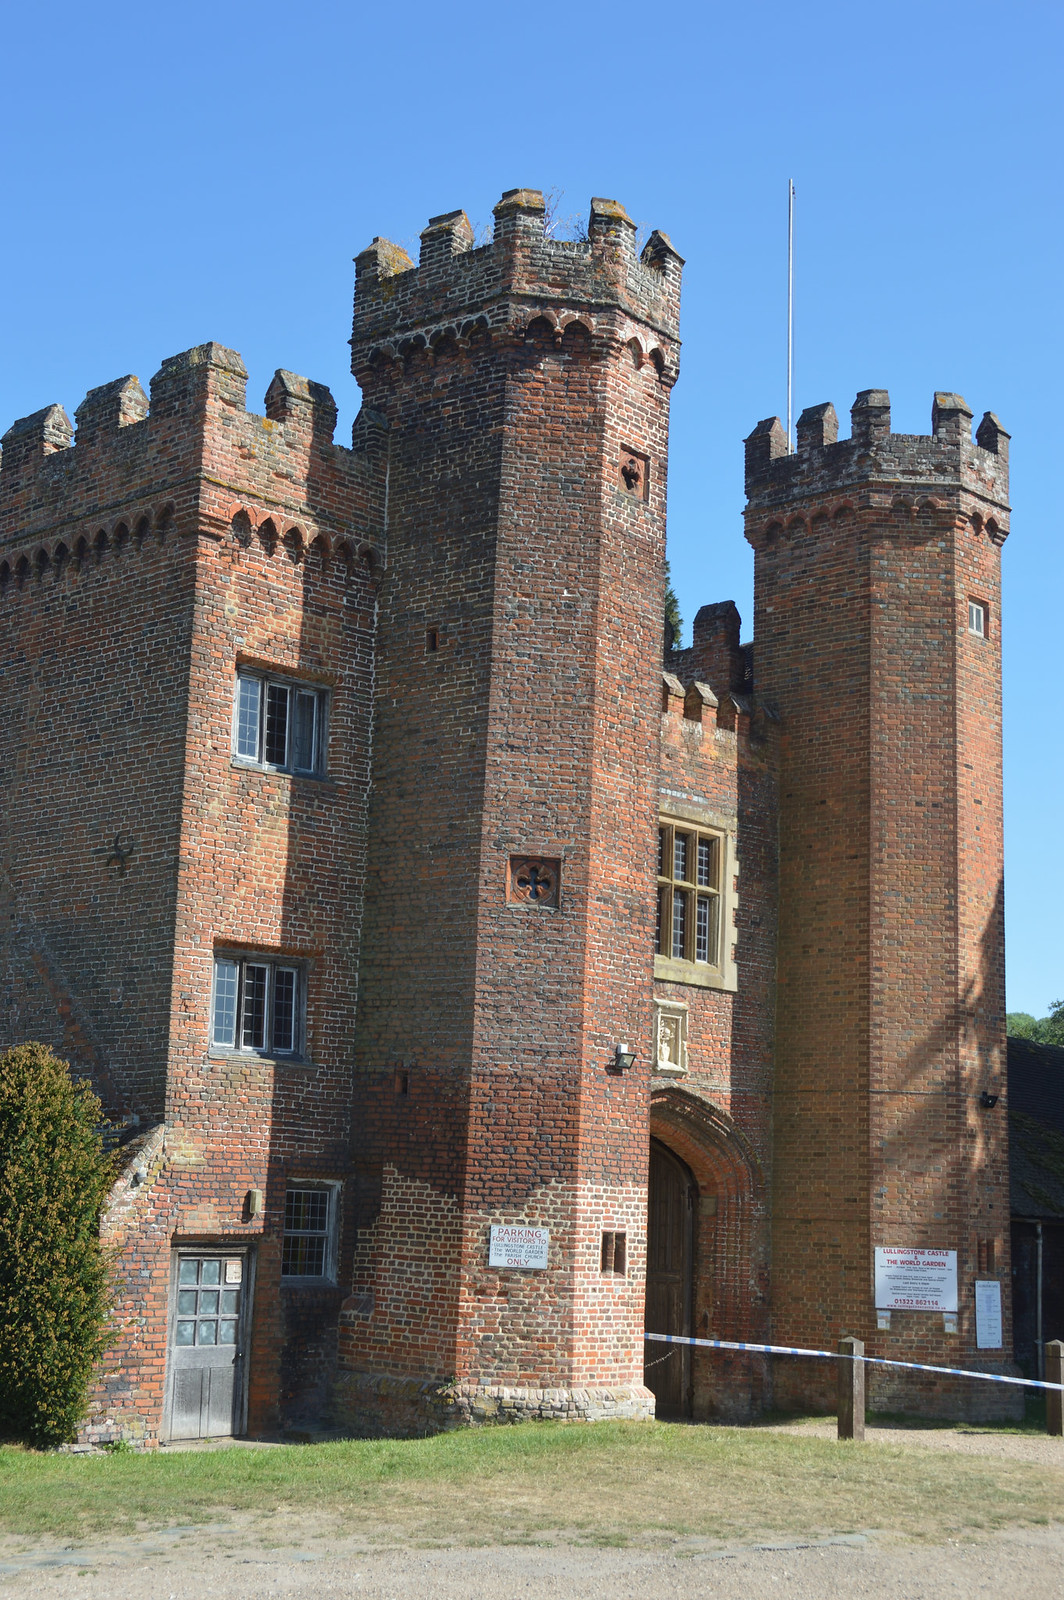 Lullingstone Castle gatehouse